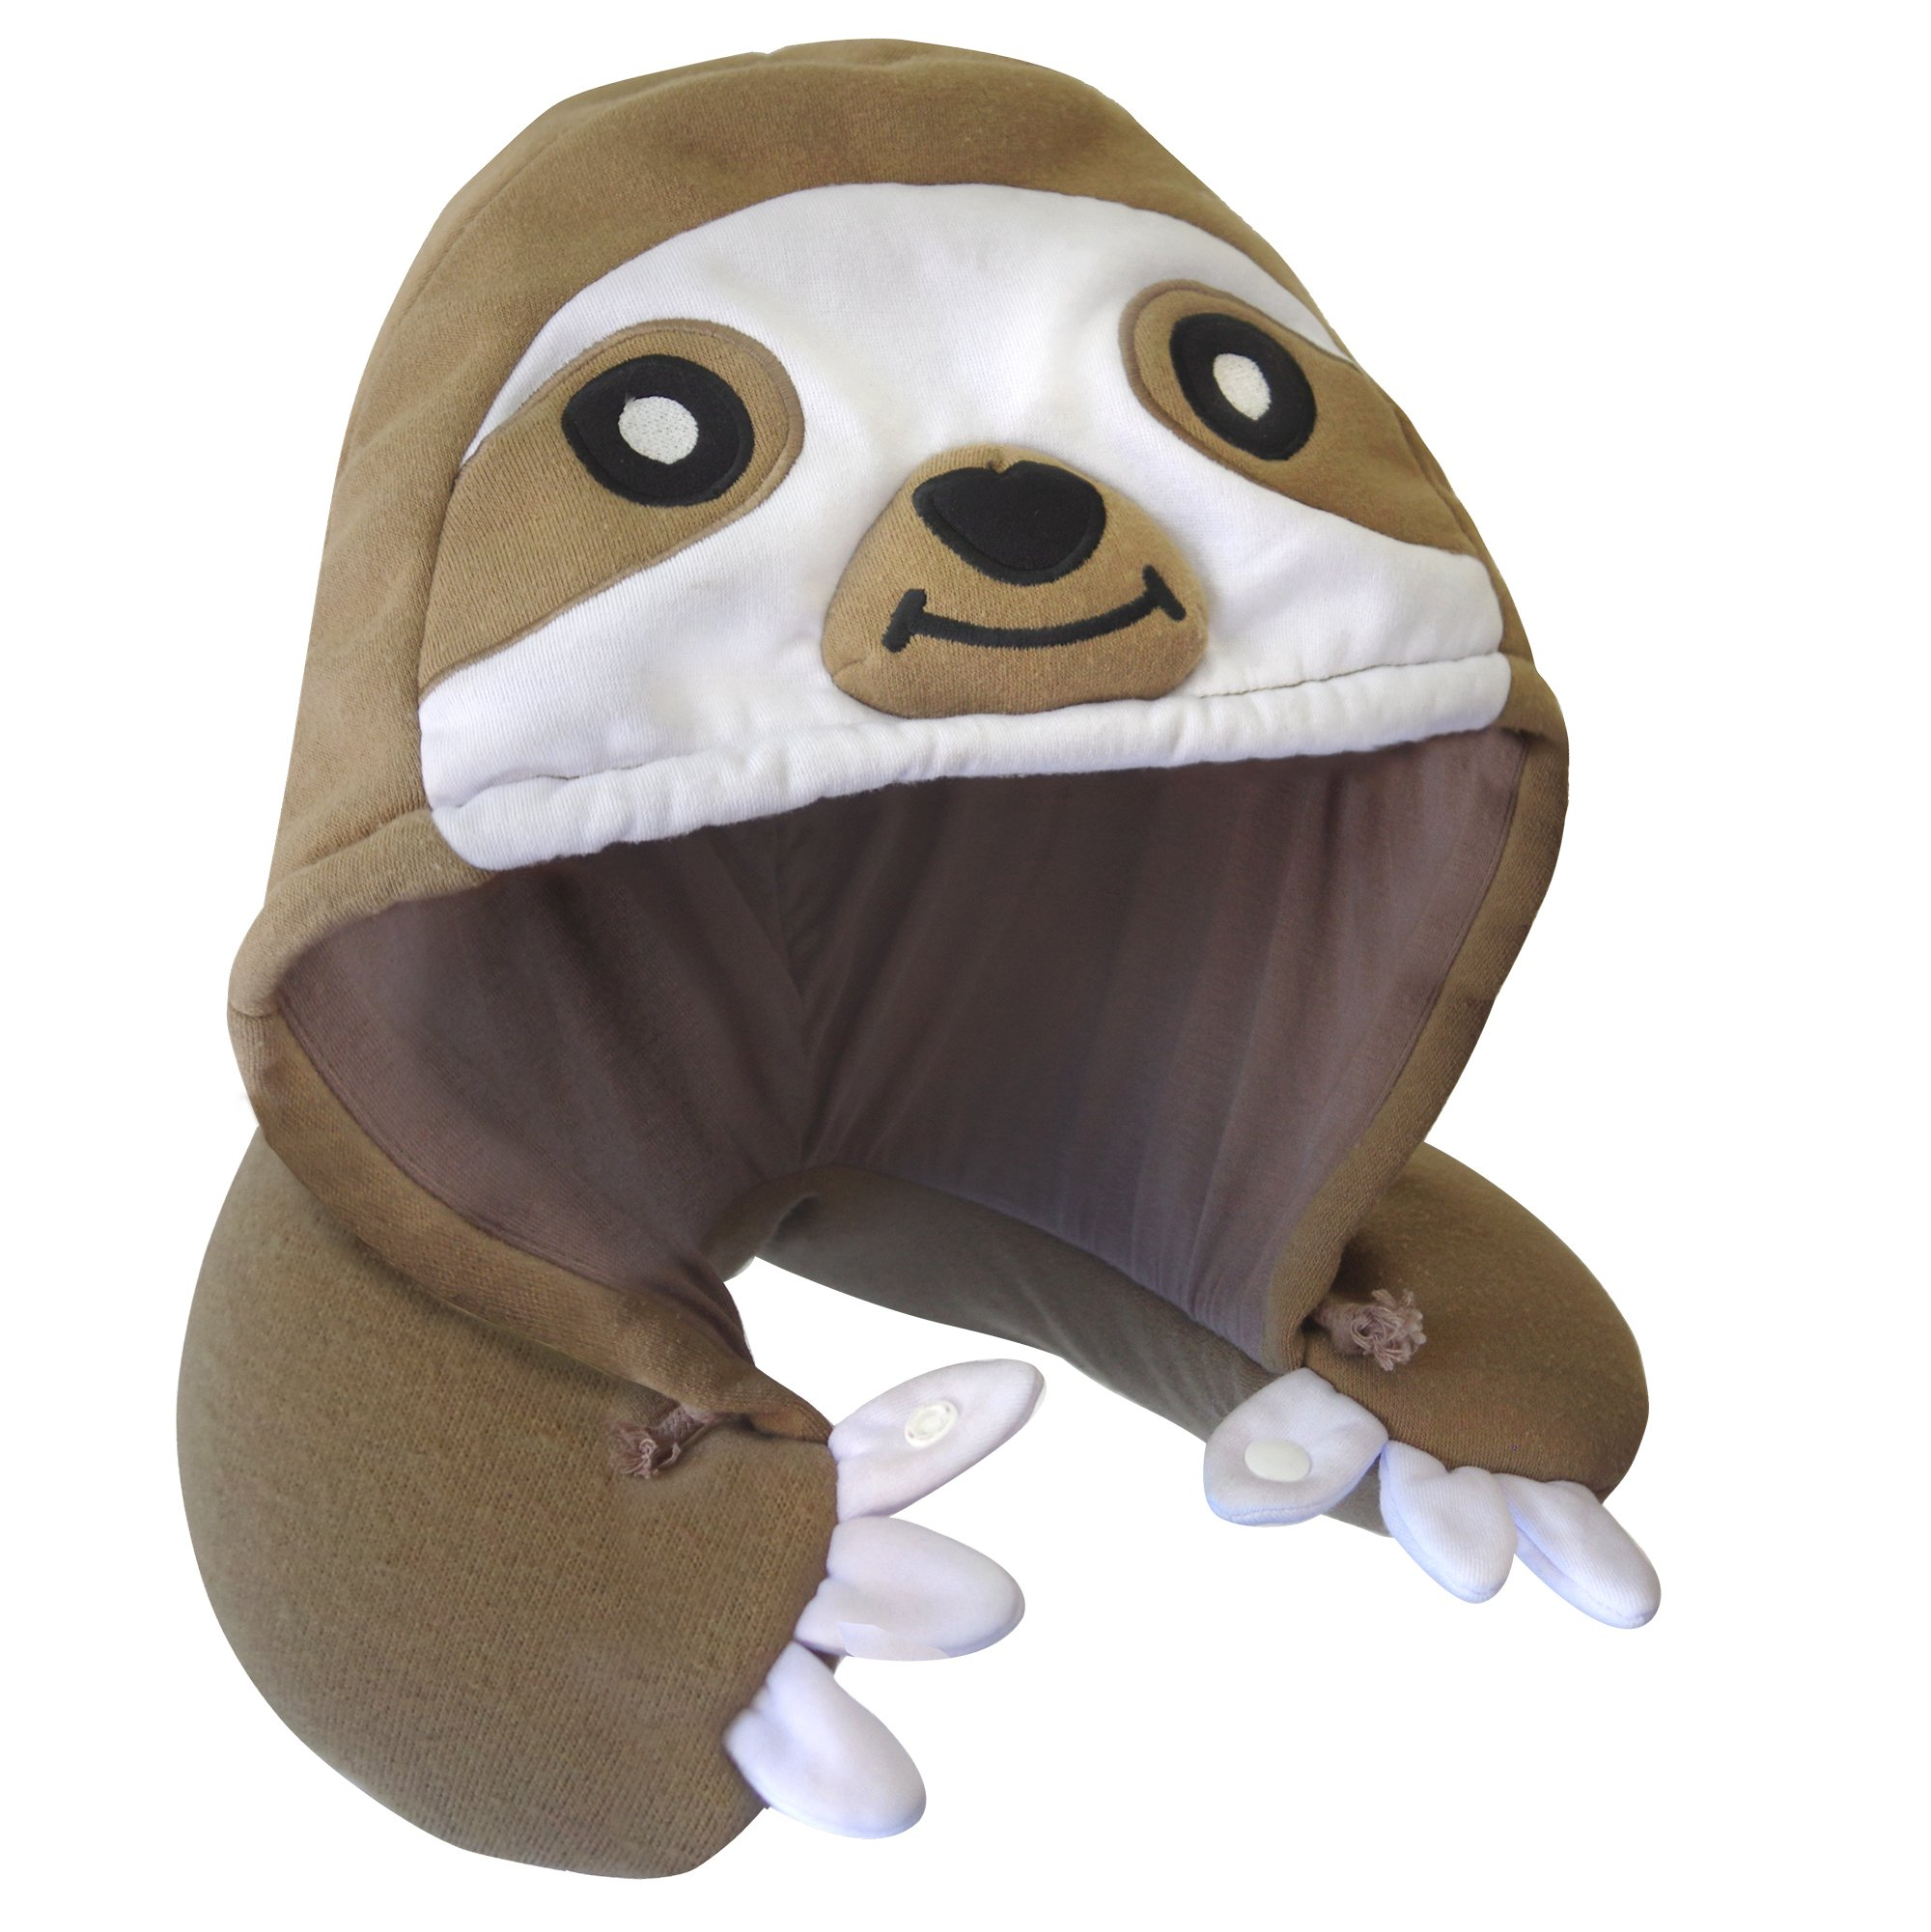 Chibiya Sloth Hooded Animal Travel Neck Pillow Plush Toy Gift, Microbead, Adjustable Drawstring, Perfect For Sleeping On Airplane With Comfortable Neck Support Designed In Japan